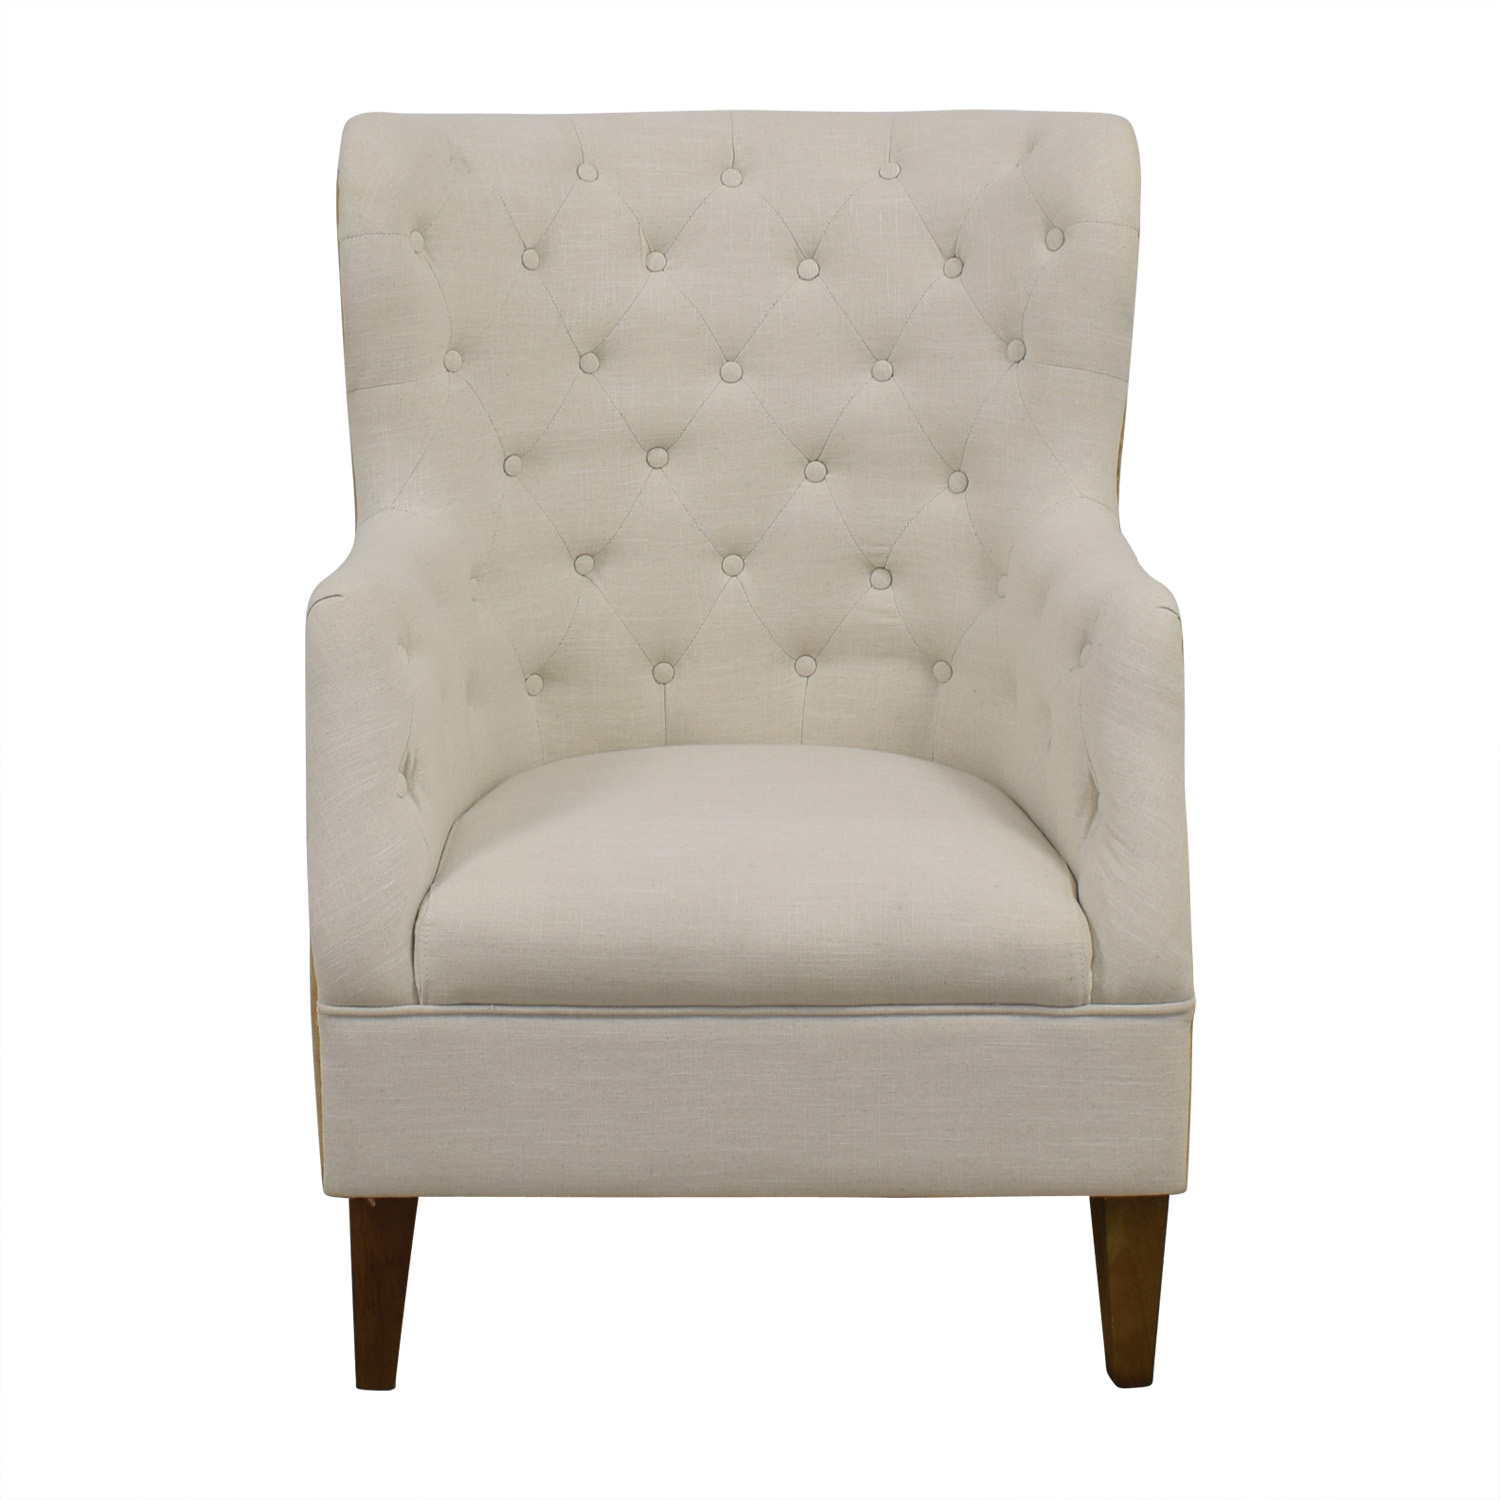 buy Classic Concepts White Tufted and Tan Back Wing Back Accent Chair Classic Concepts